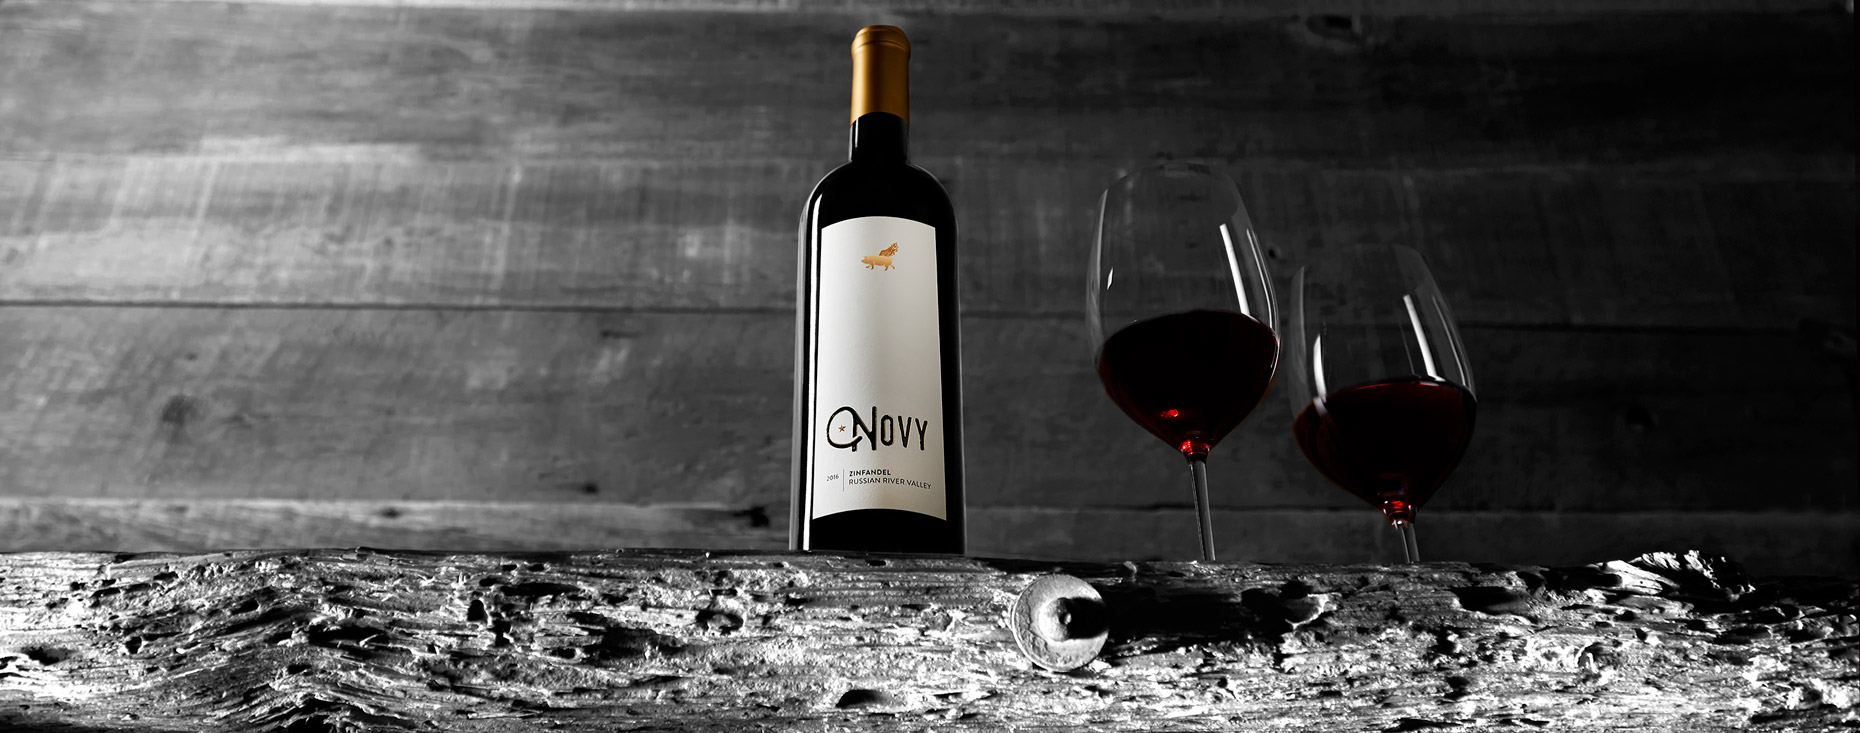 AlanCampbellPhotography, Novy wine wide shot